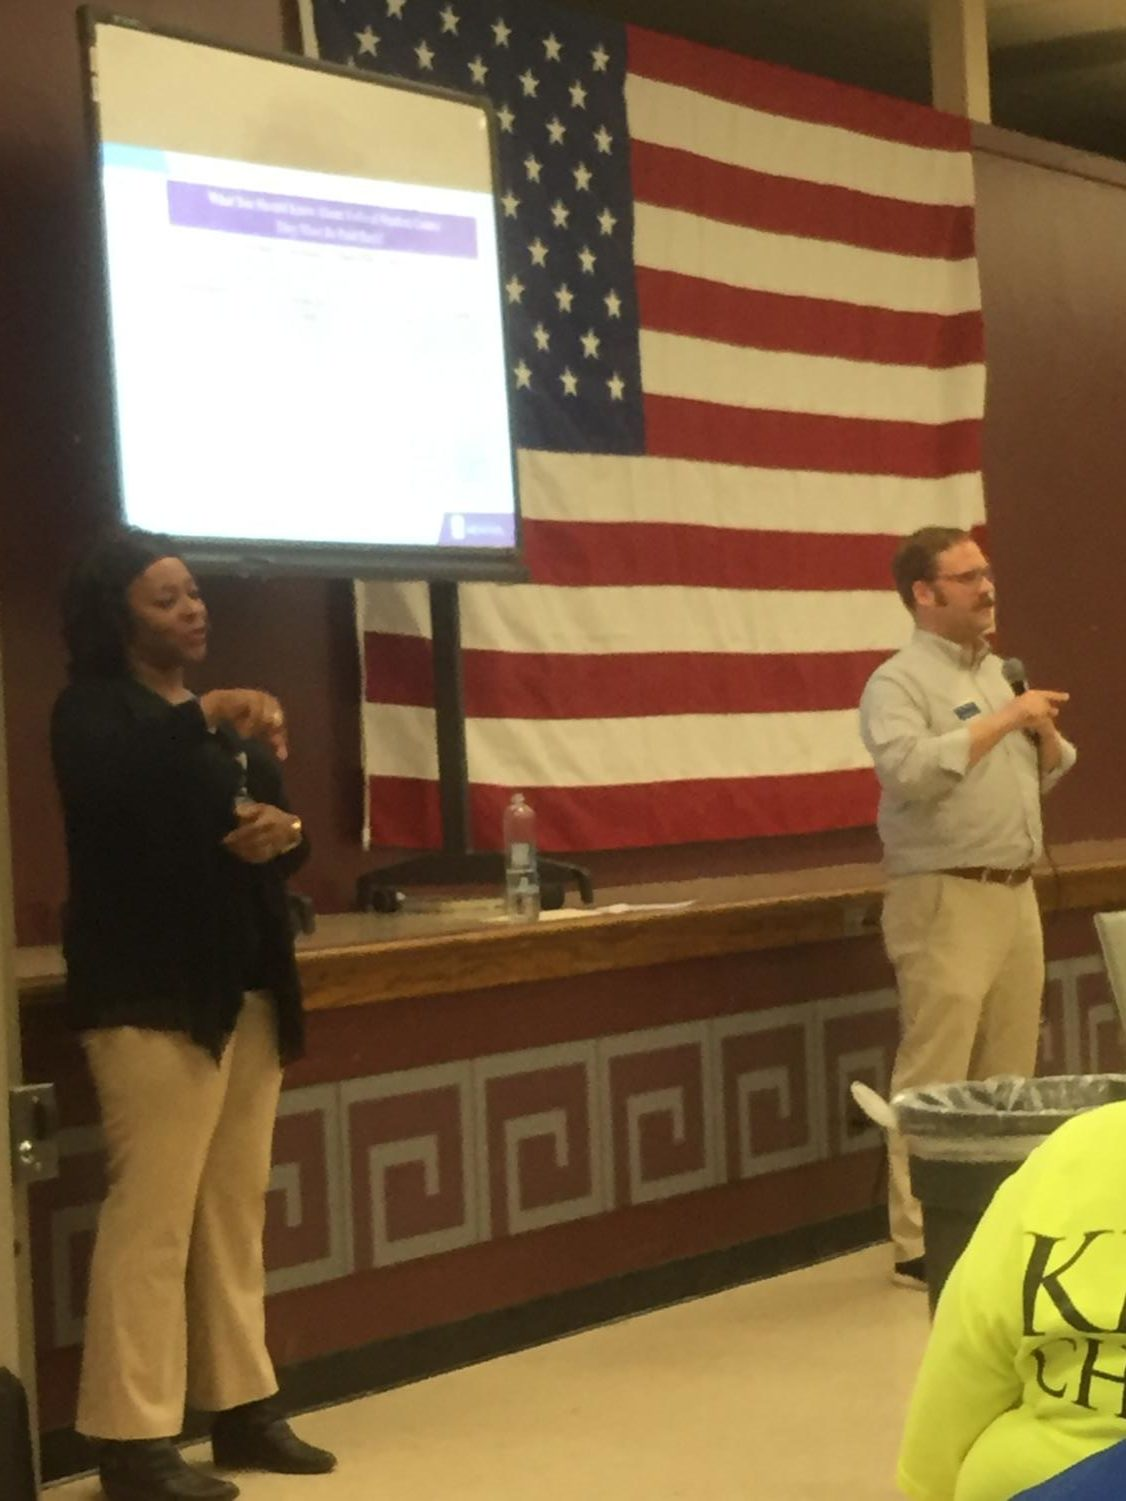 Financial Officer Matt Rhodes came to share scholarship information specifically for the University of Memphis. He then went on to explain the process of applying for FAFSA and what students should be doing to prepare for all college applications.